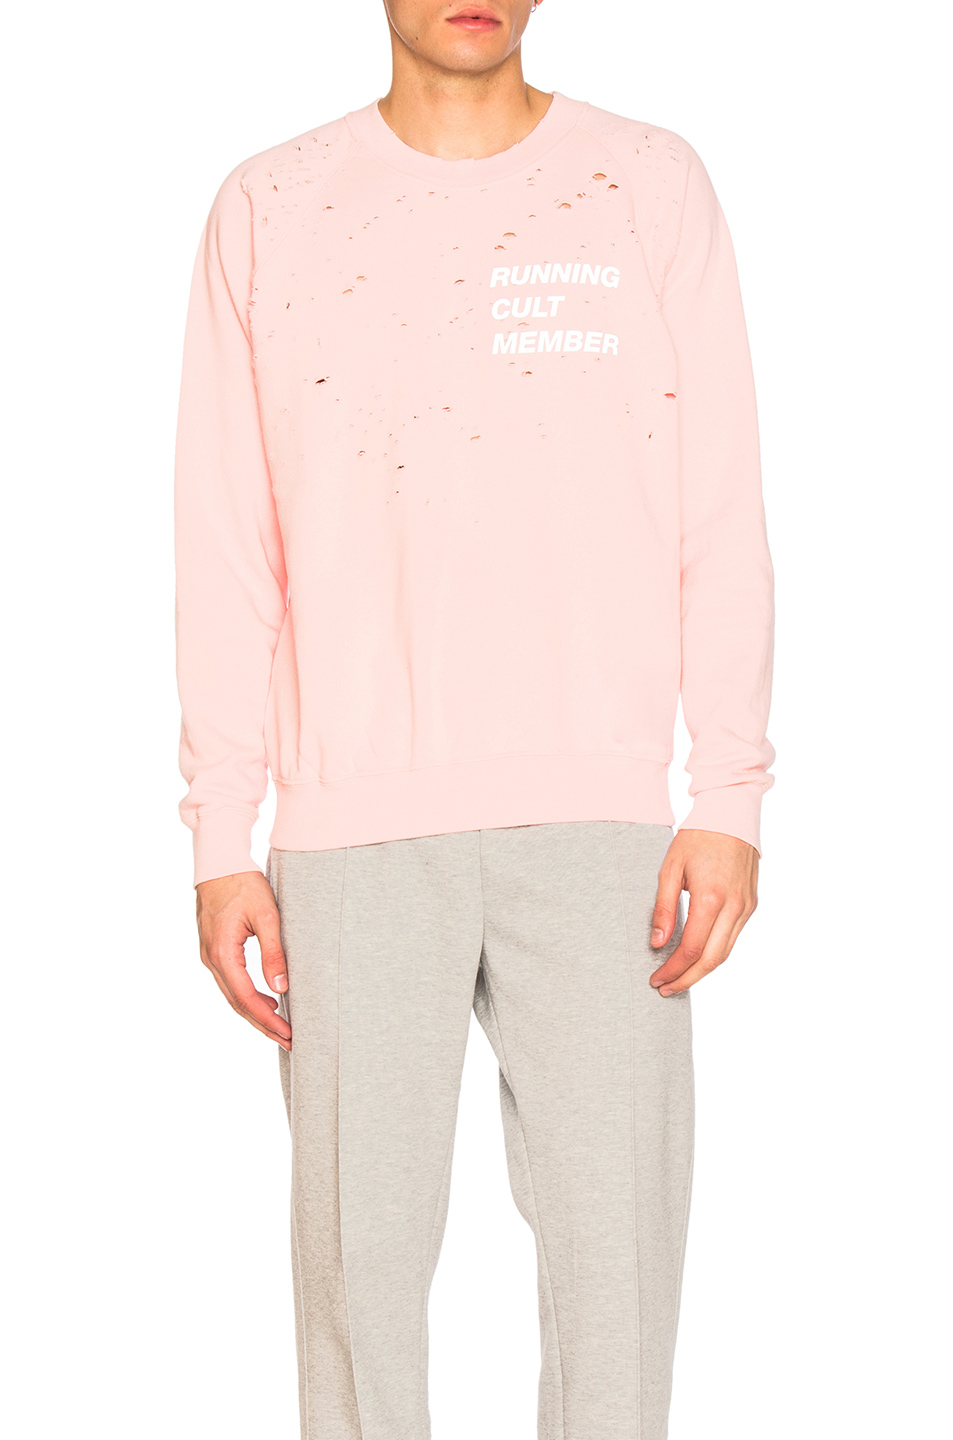 Satisfy Cult Moth Eaten Sweatshirt in Pink